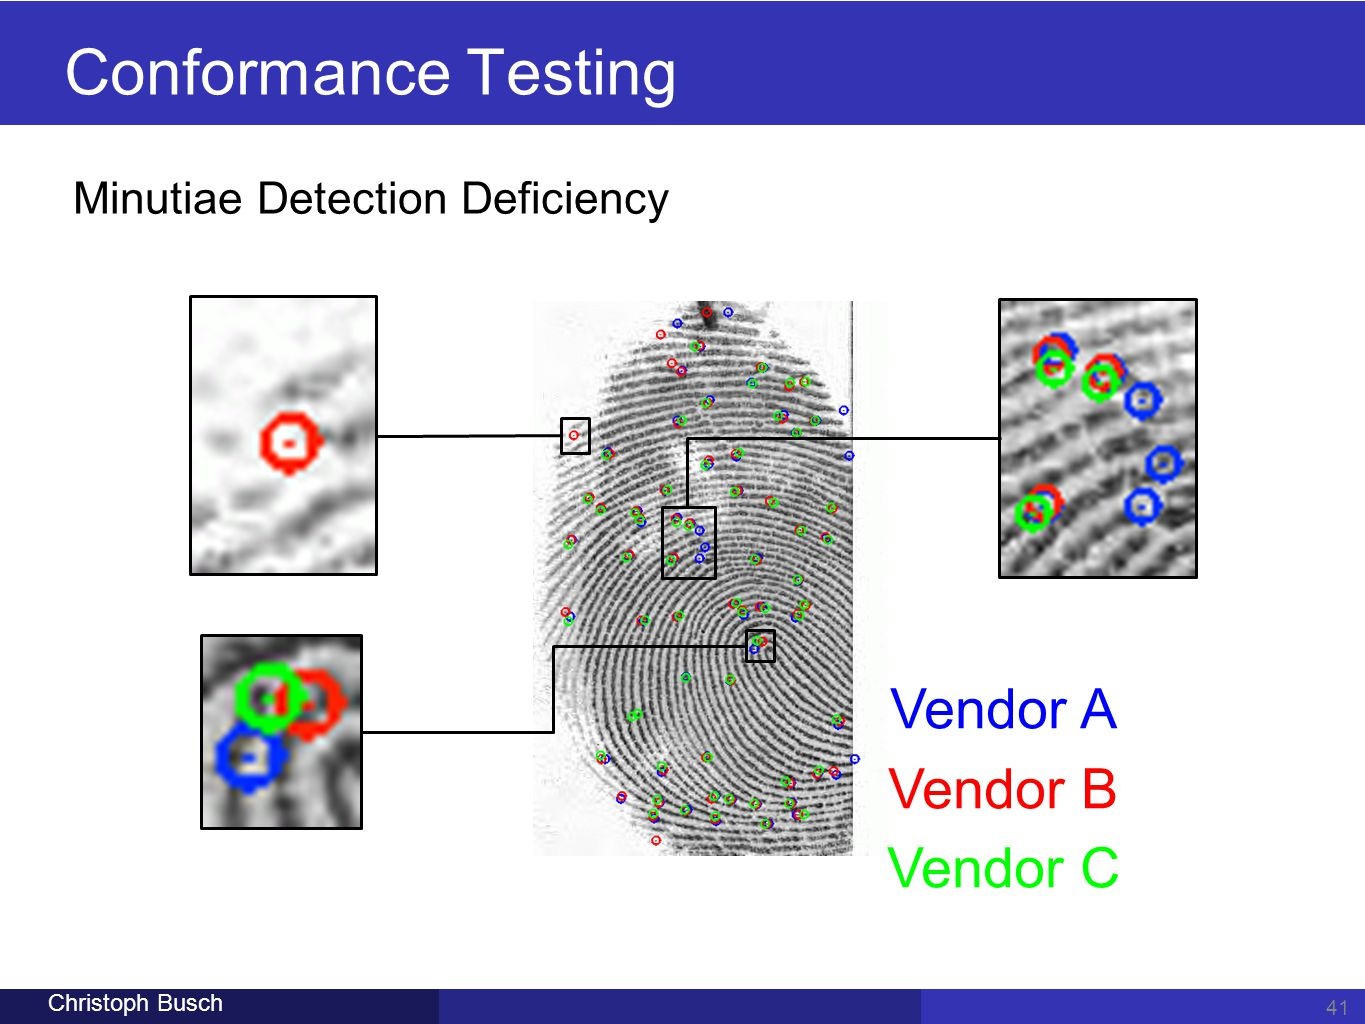 Conformance Testing Vendor A Vendor B Vendor C